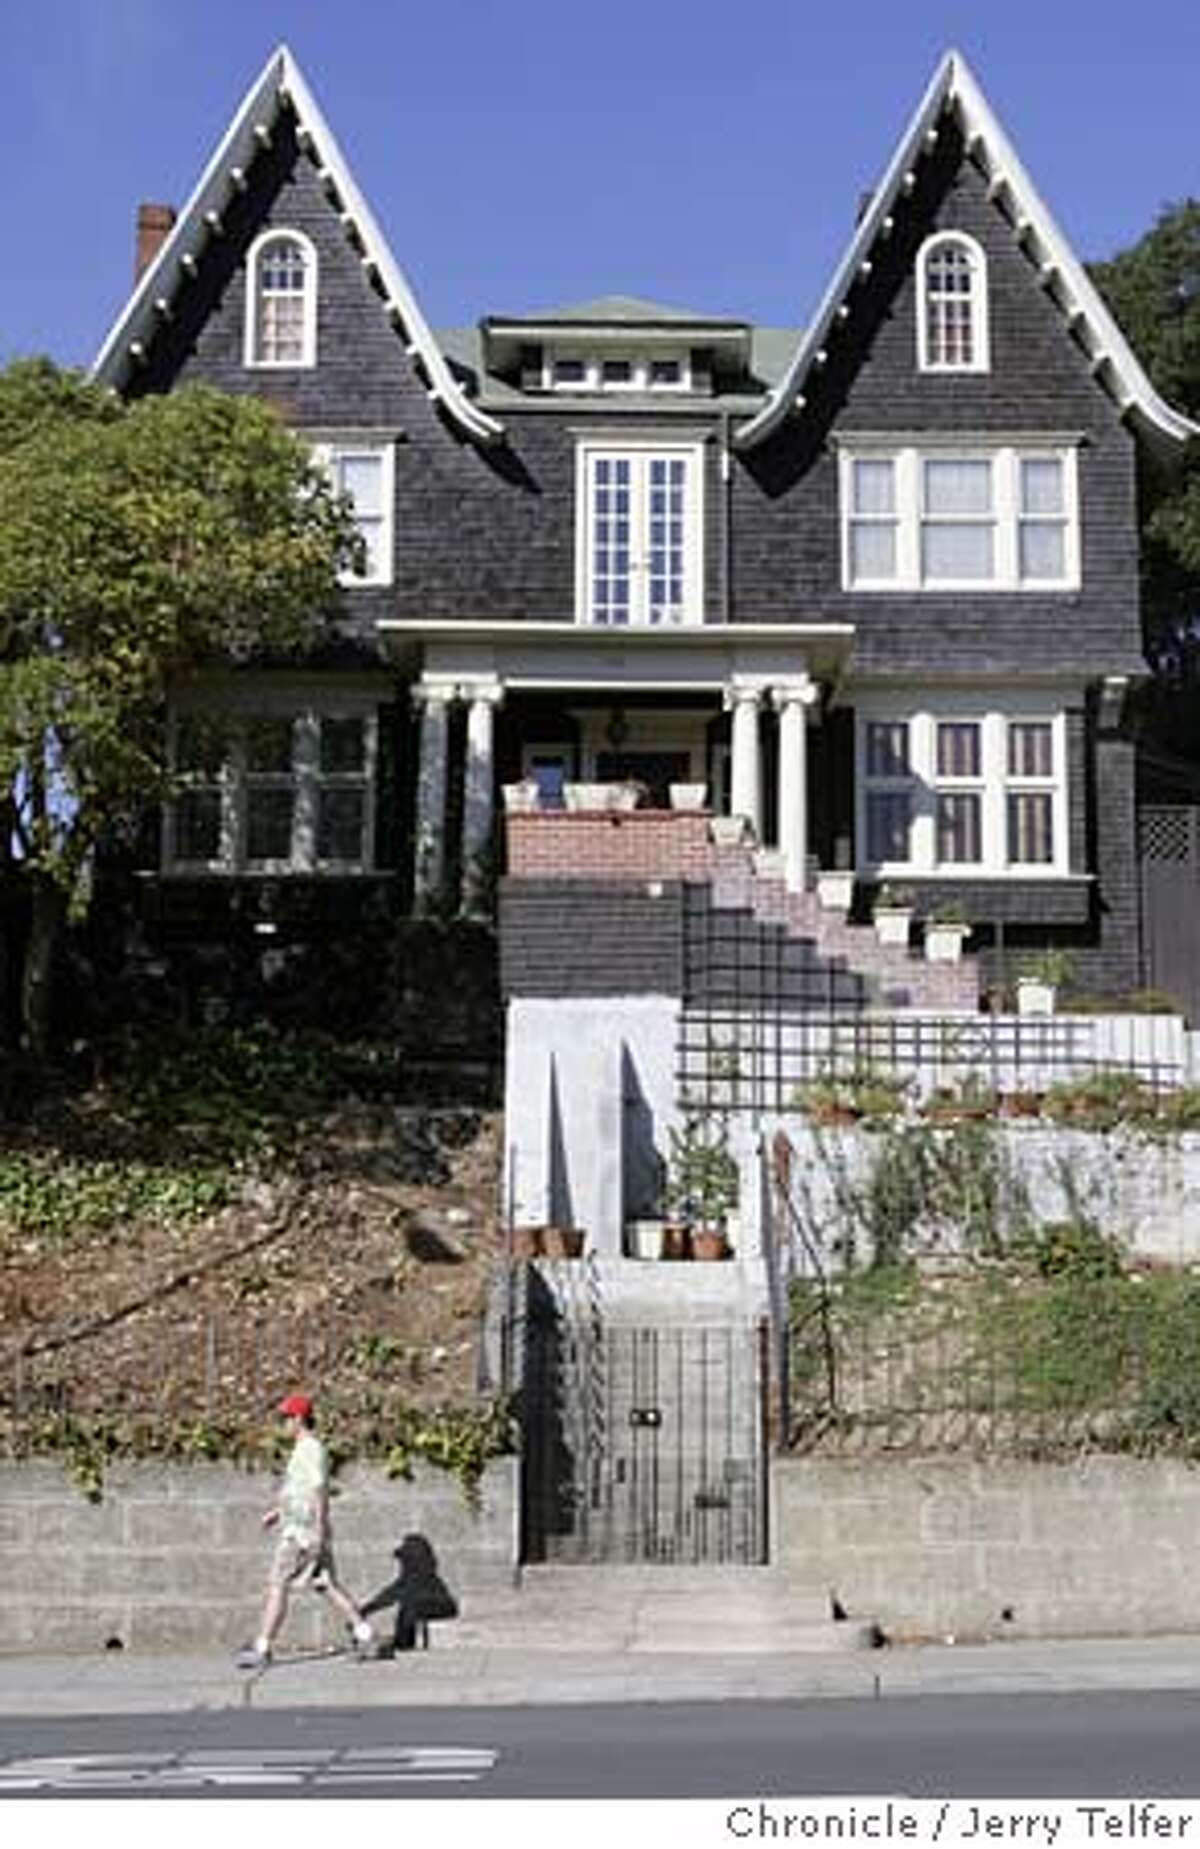 Event on 10/22/04 in Vallejo. 720 Georgia is a classic symmetrical gabled design by architect William Jones, who designed many landmark Vallejo homes. Chronicle photo by Jerry Telfer / The Chronicle